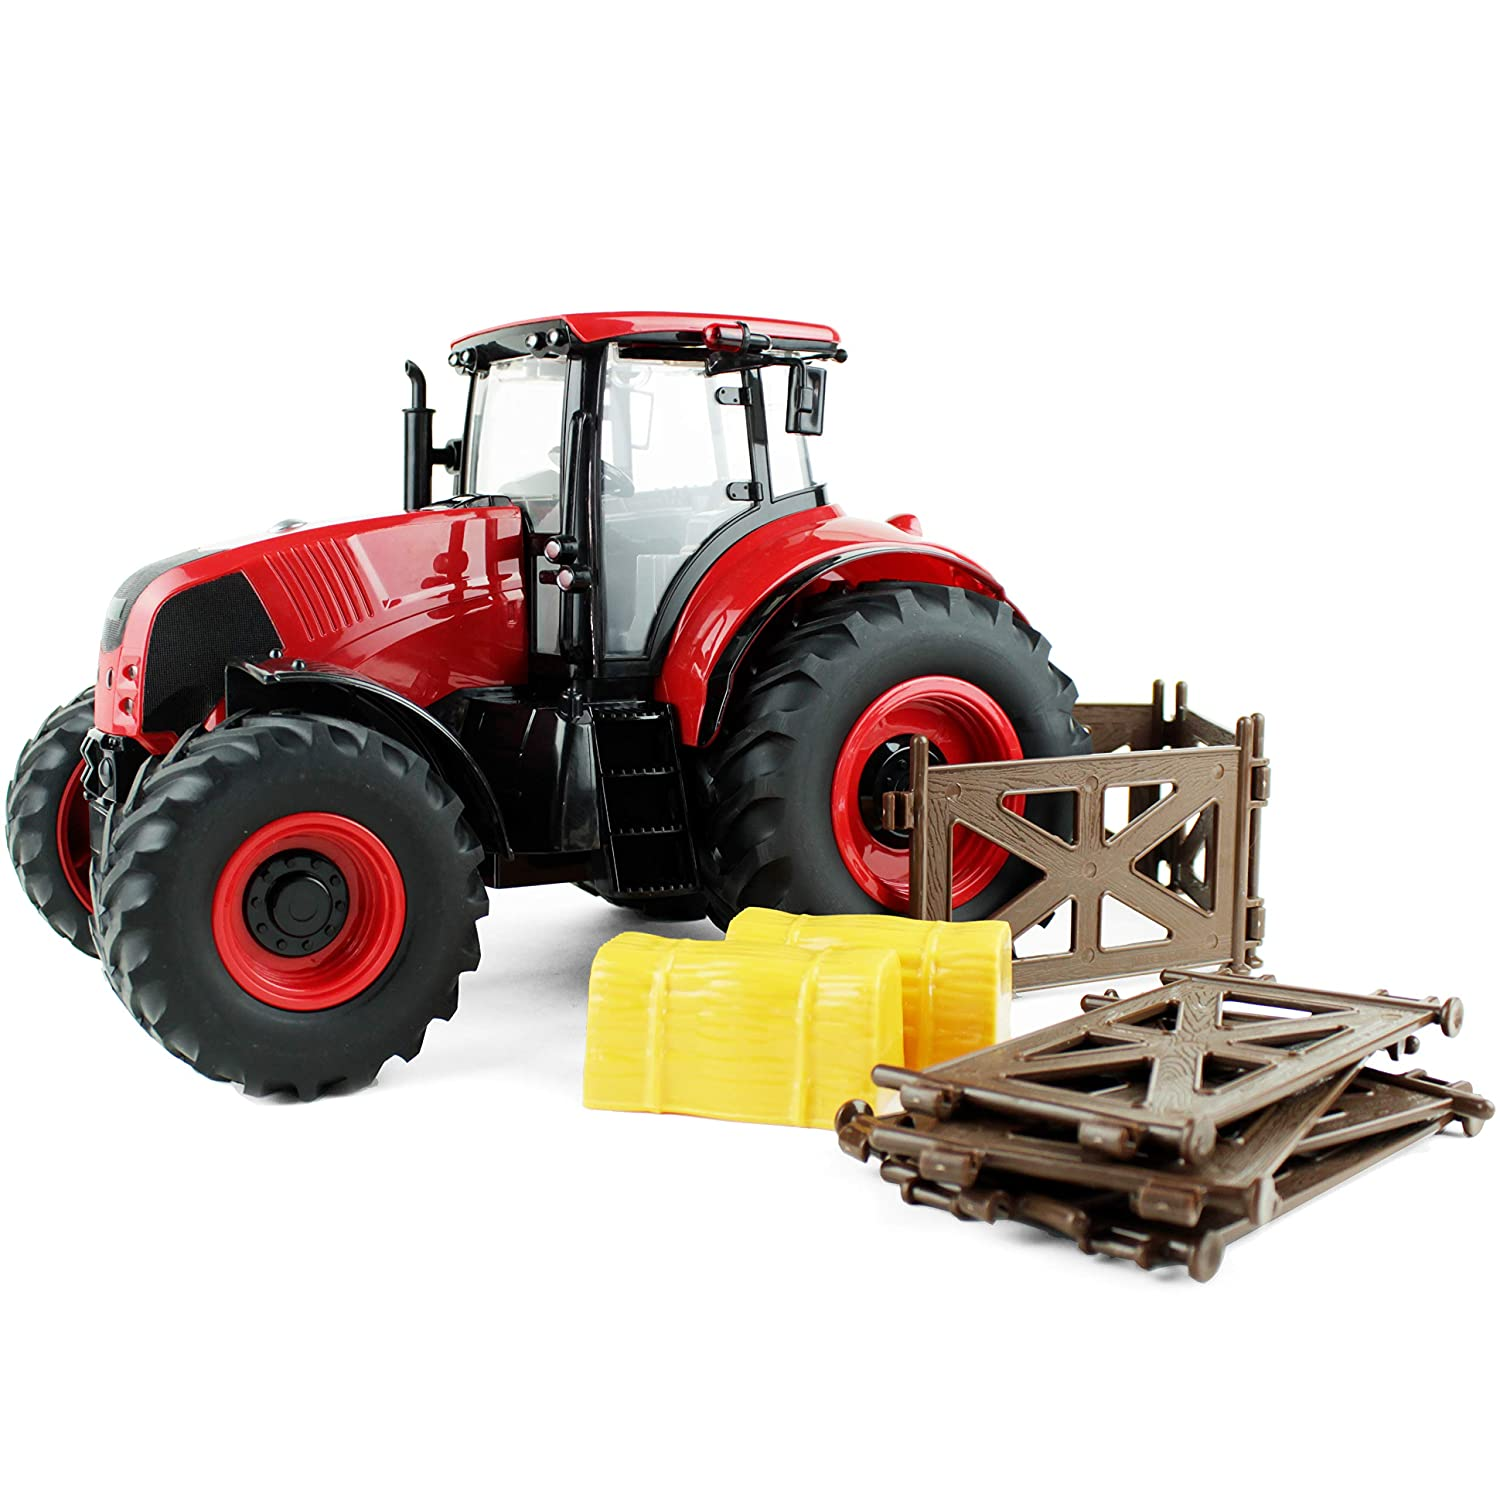 Boley Red Farm Tractor Toy - Farm Tractor Car with Hay Bales and Barn Gates - Lights Up and Makes Sounds 53034